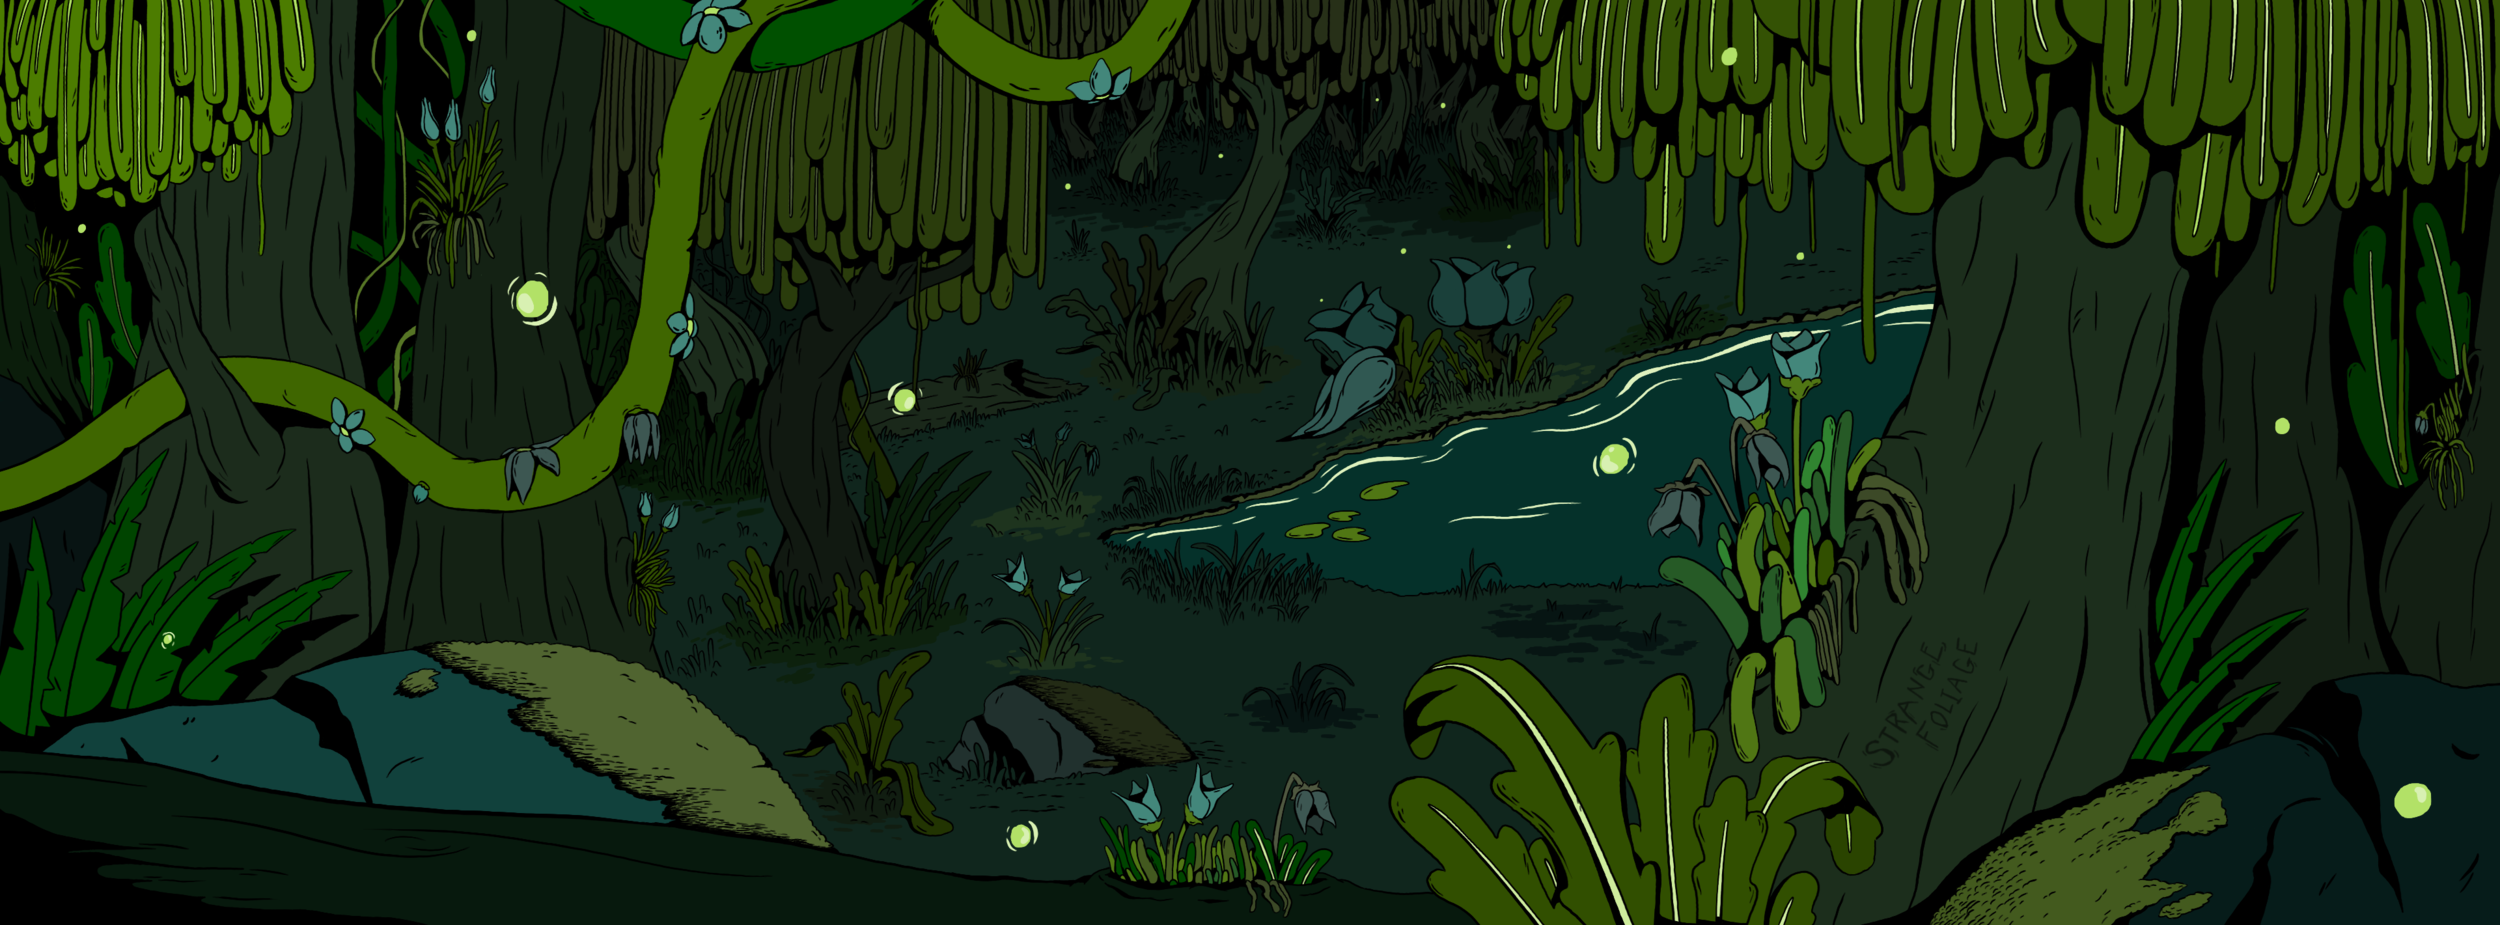 StrangeFoliage_FacebookBanner_Colored_02.png